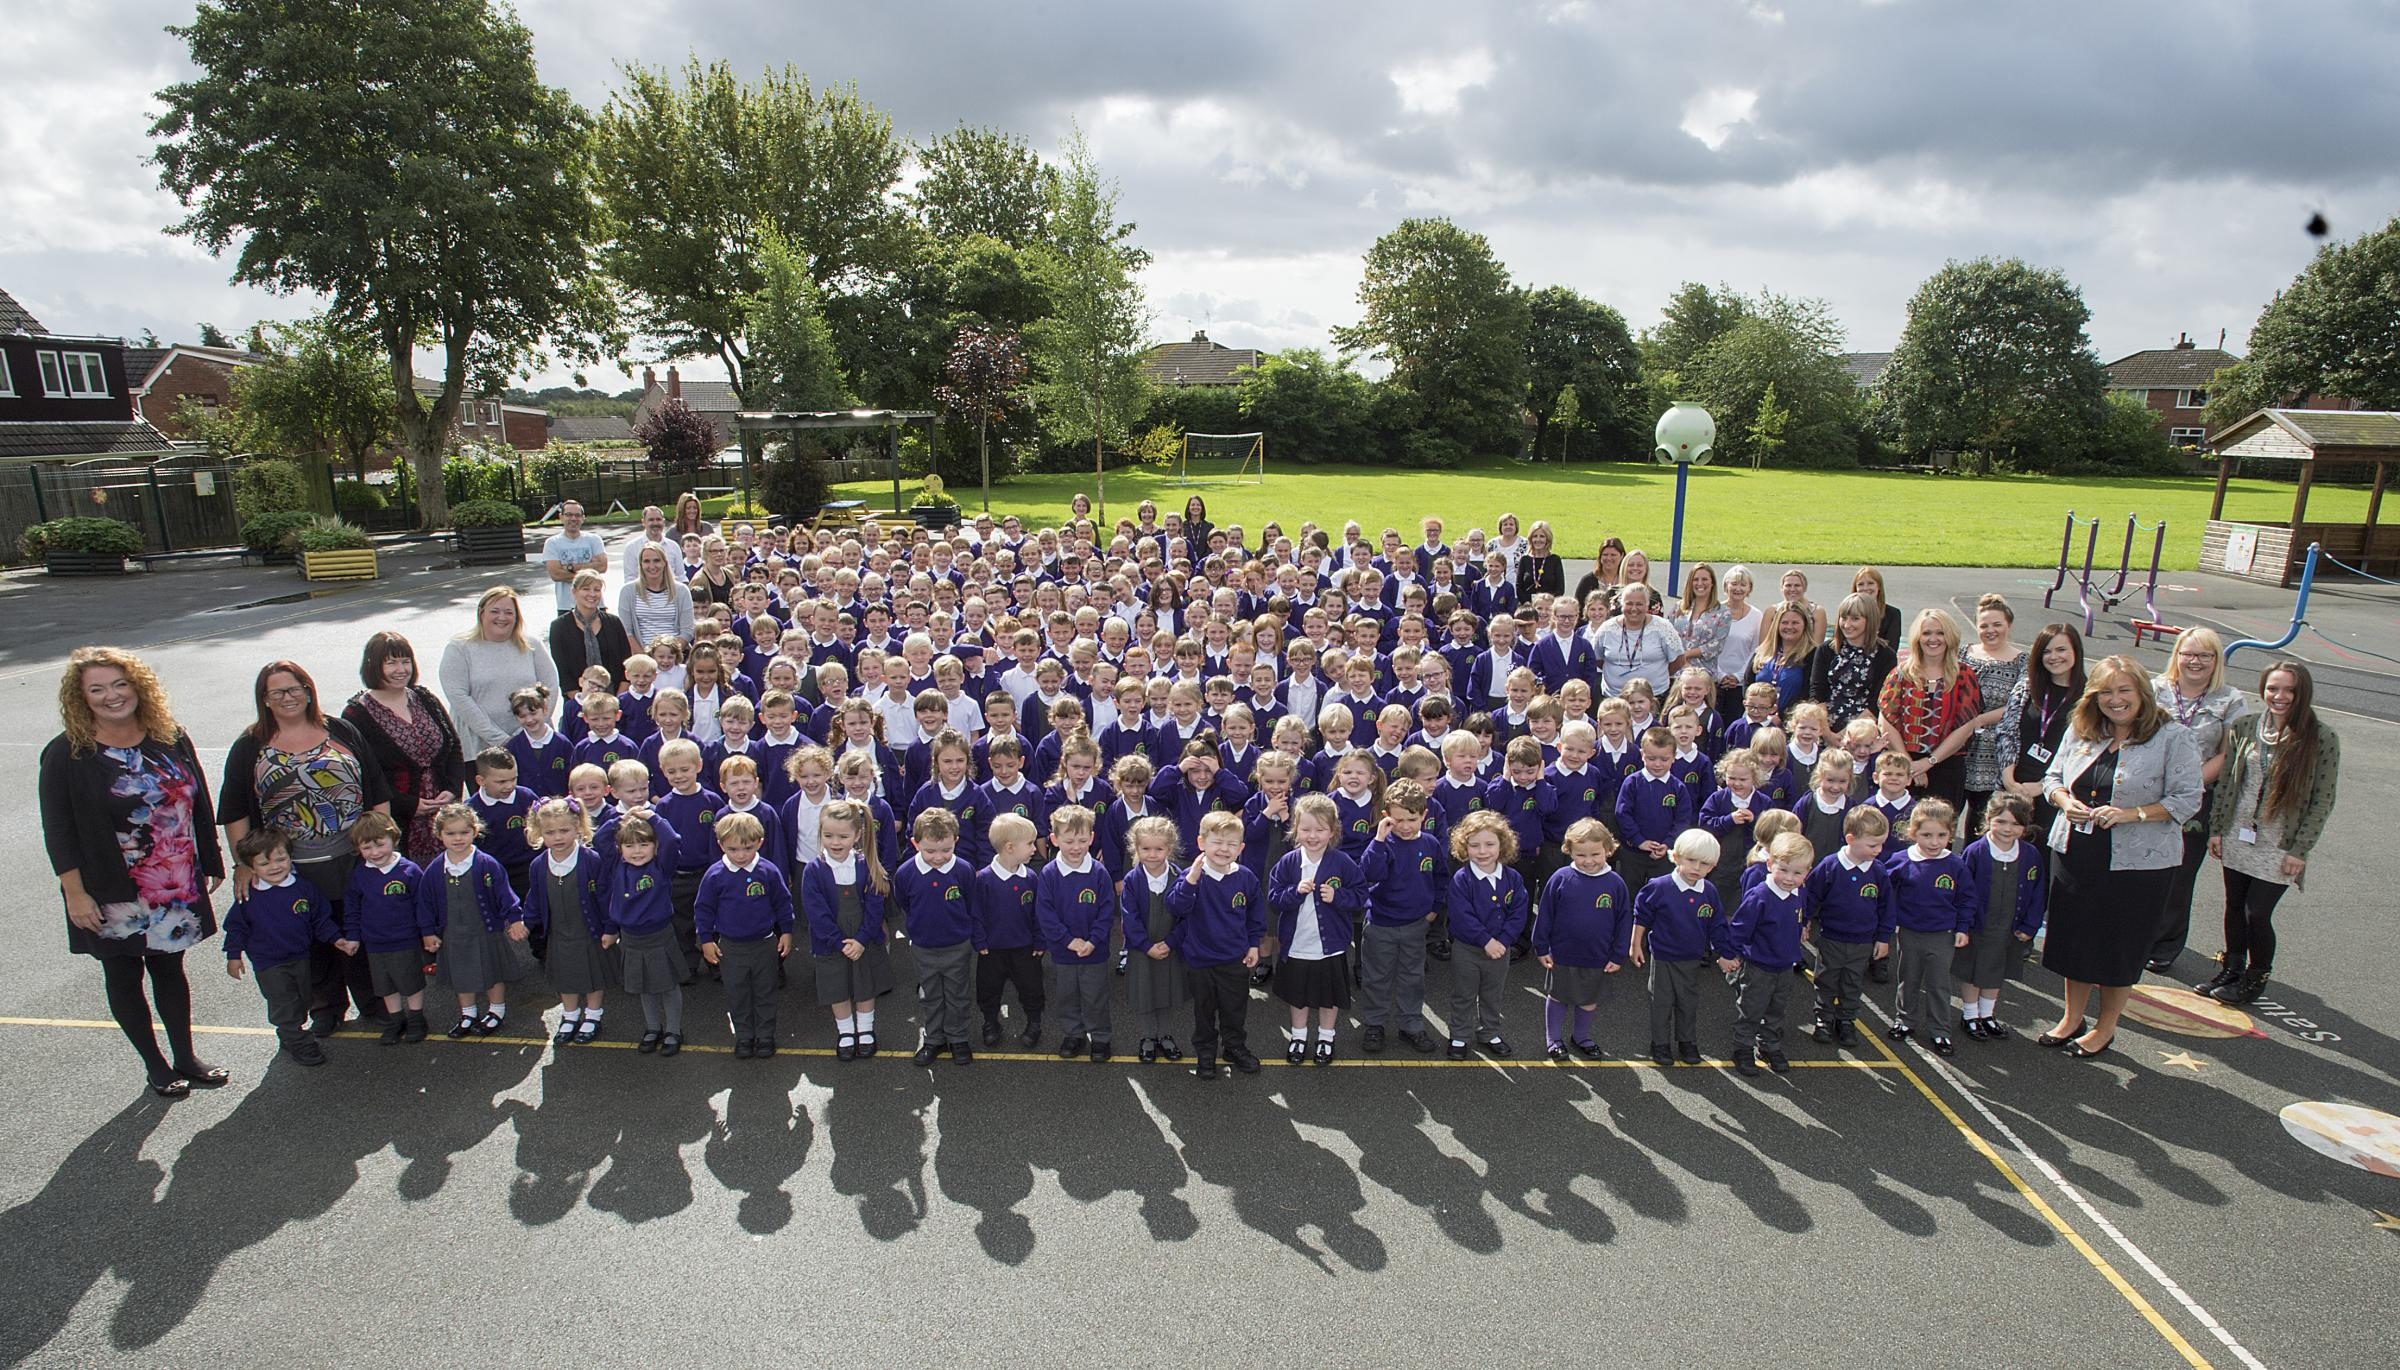 Staff, pupils and Governors at Garswood Primary School celebrate after being judged as outstanding across all areas by Ofsted